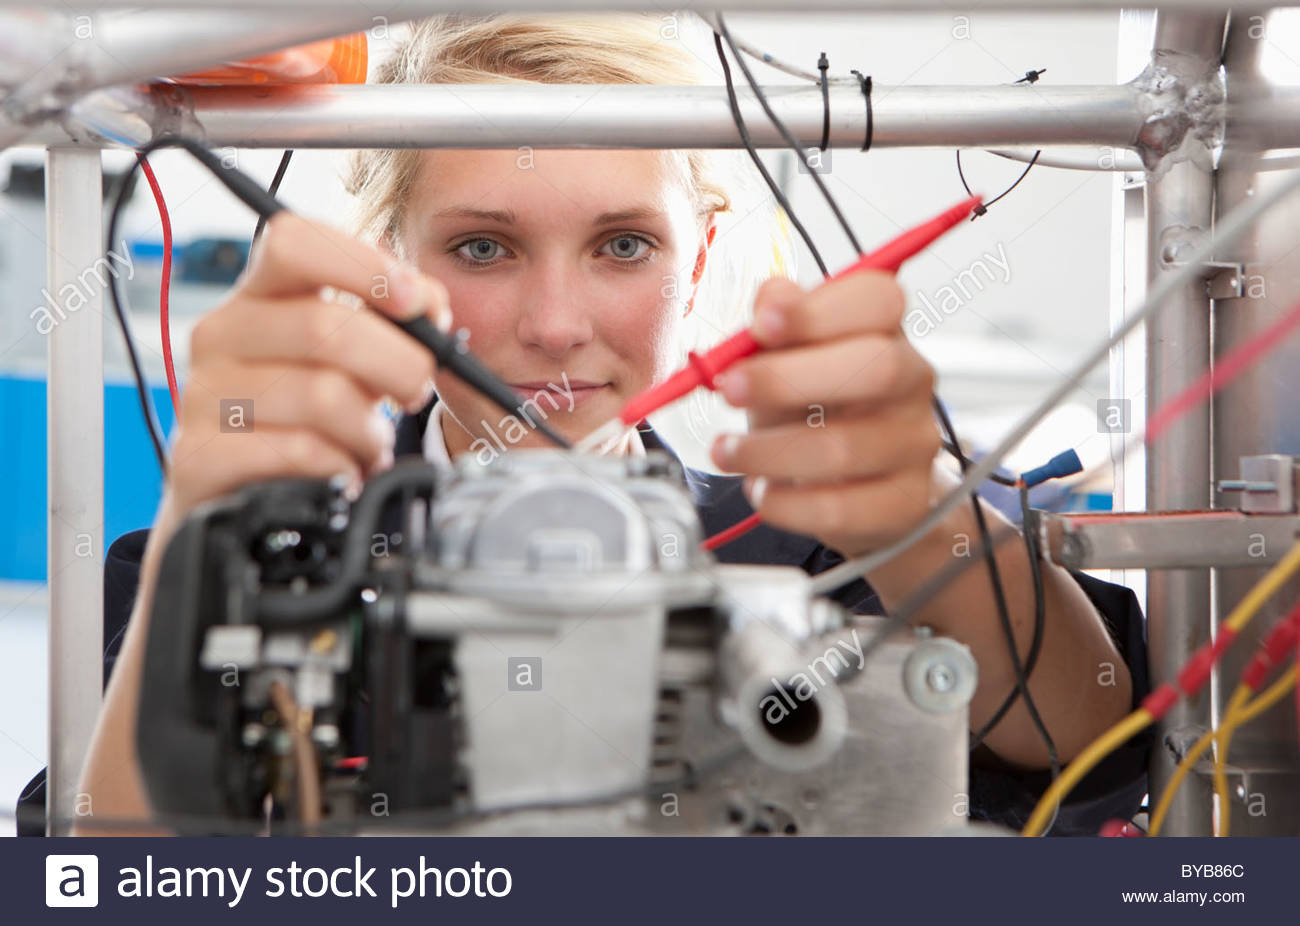 Student constructing electric vehicle prototype in vocational school - Stock Image